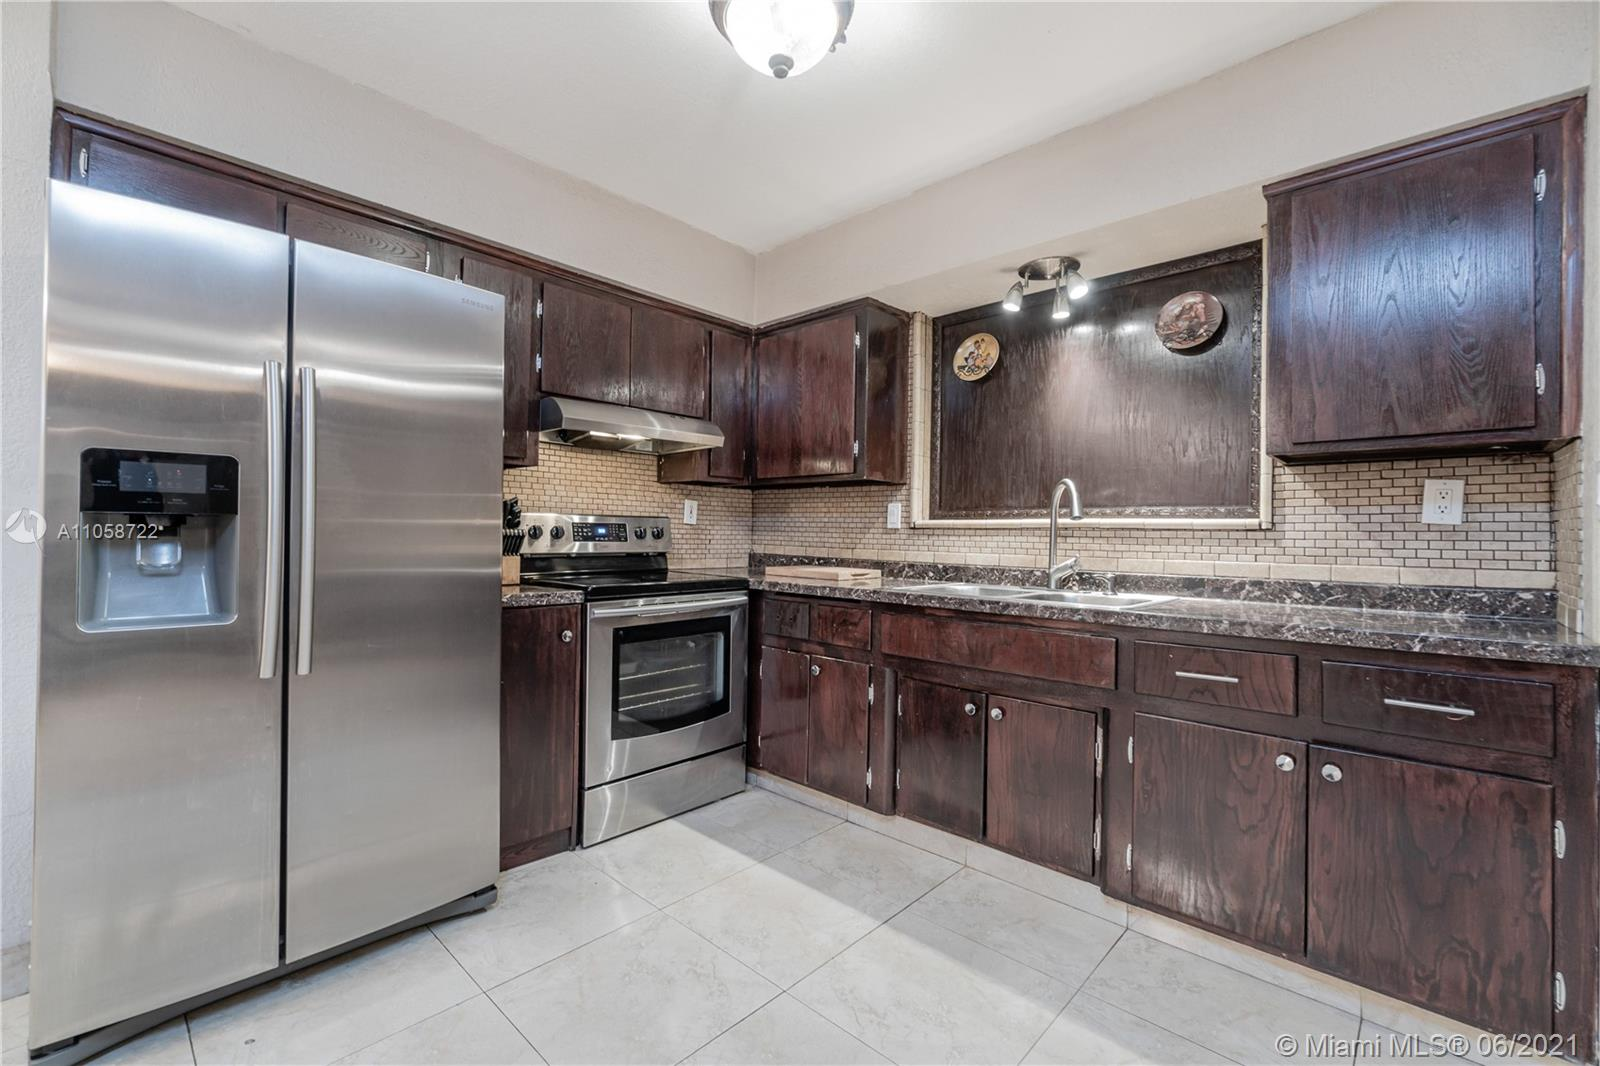 Boulevard Heights - 8211 NW 16th St, Pembroke Pines, FL 33024